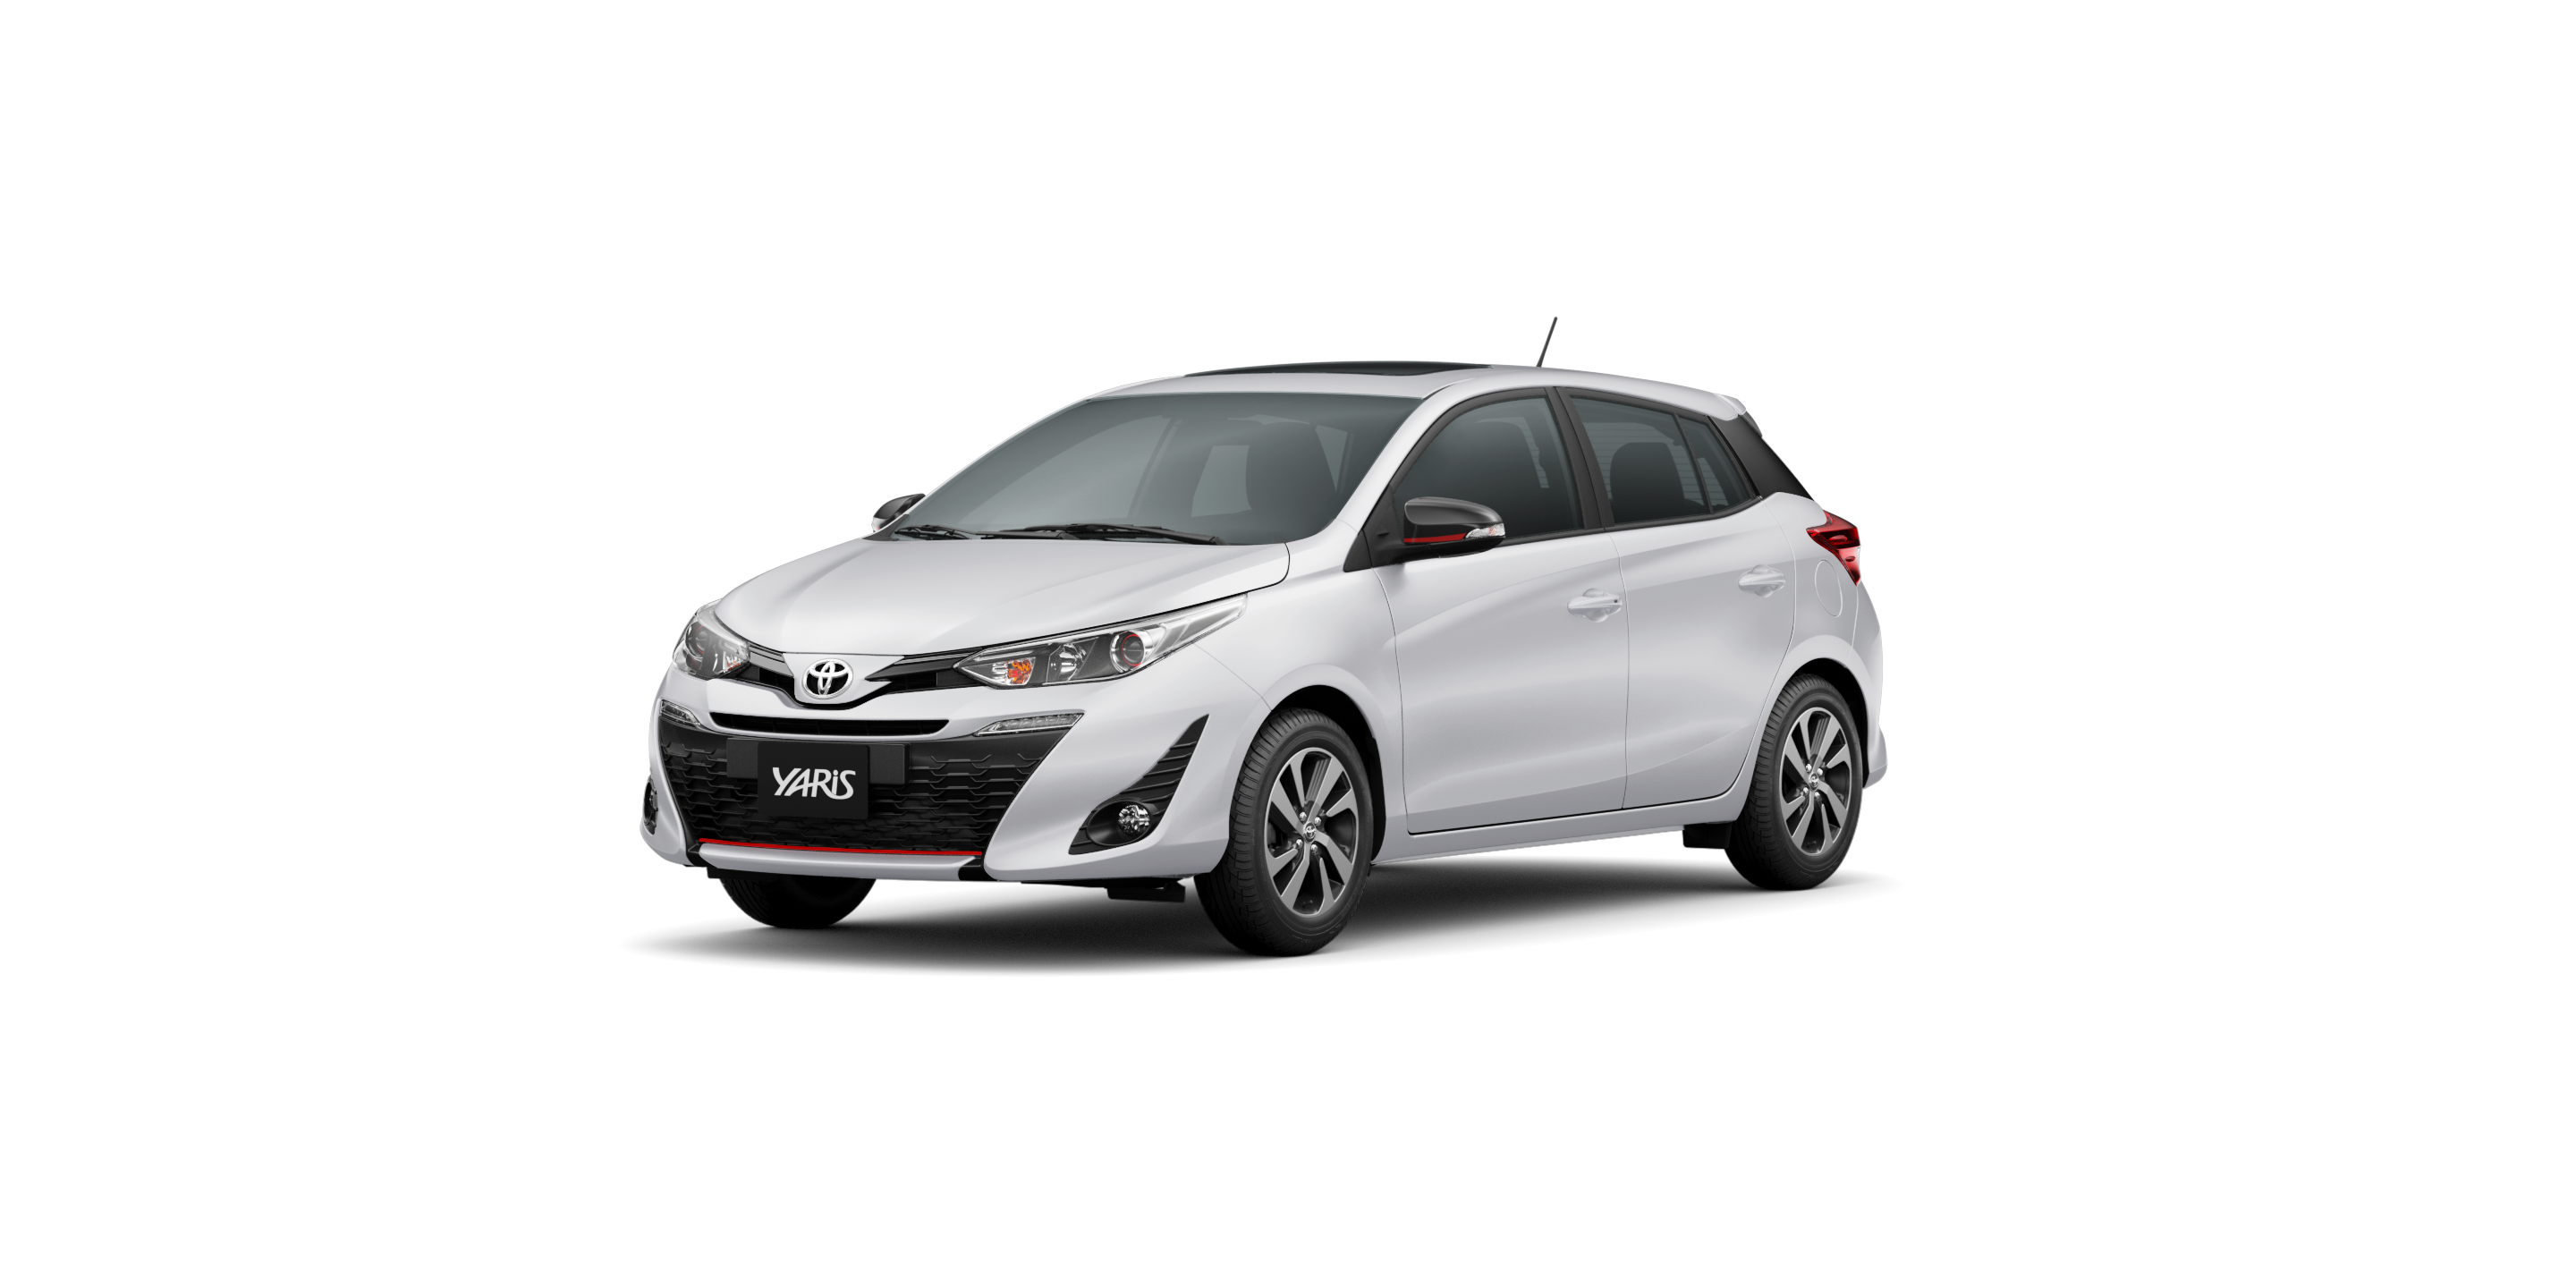 https://www.toyotacomunica.com.br/wp-content/uploads/2021/08/08102020-Yaris-S-2.png